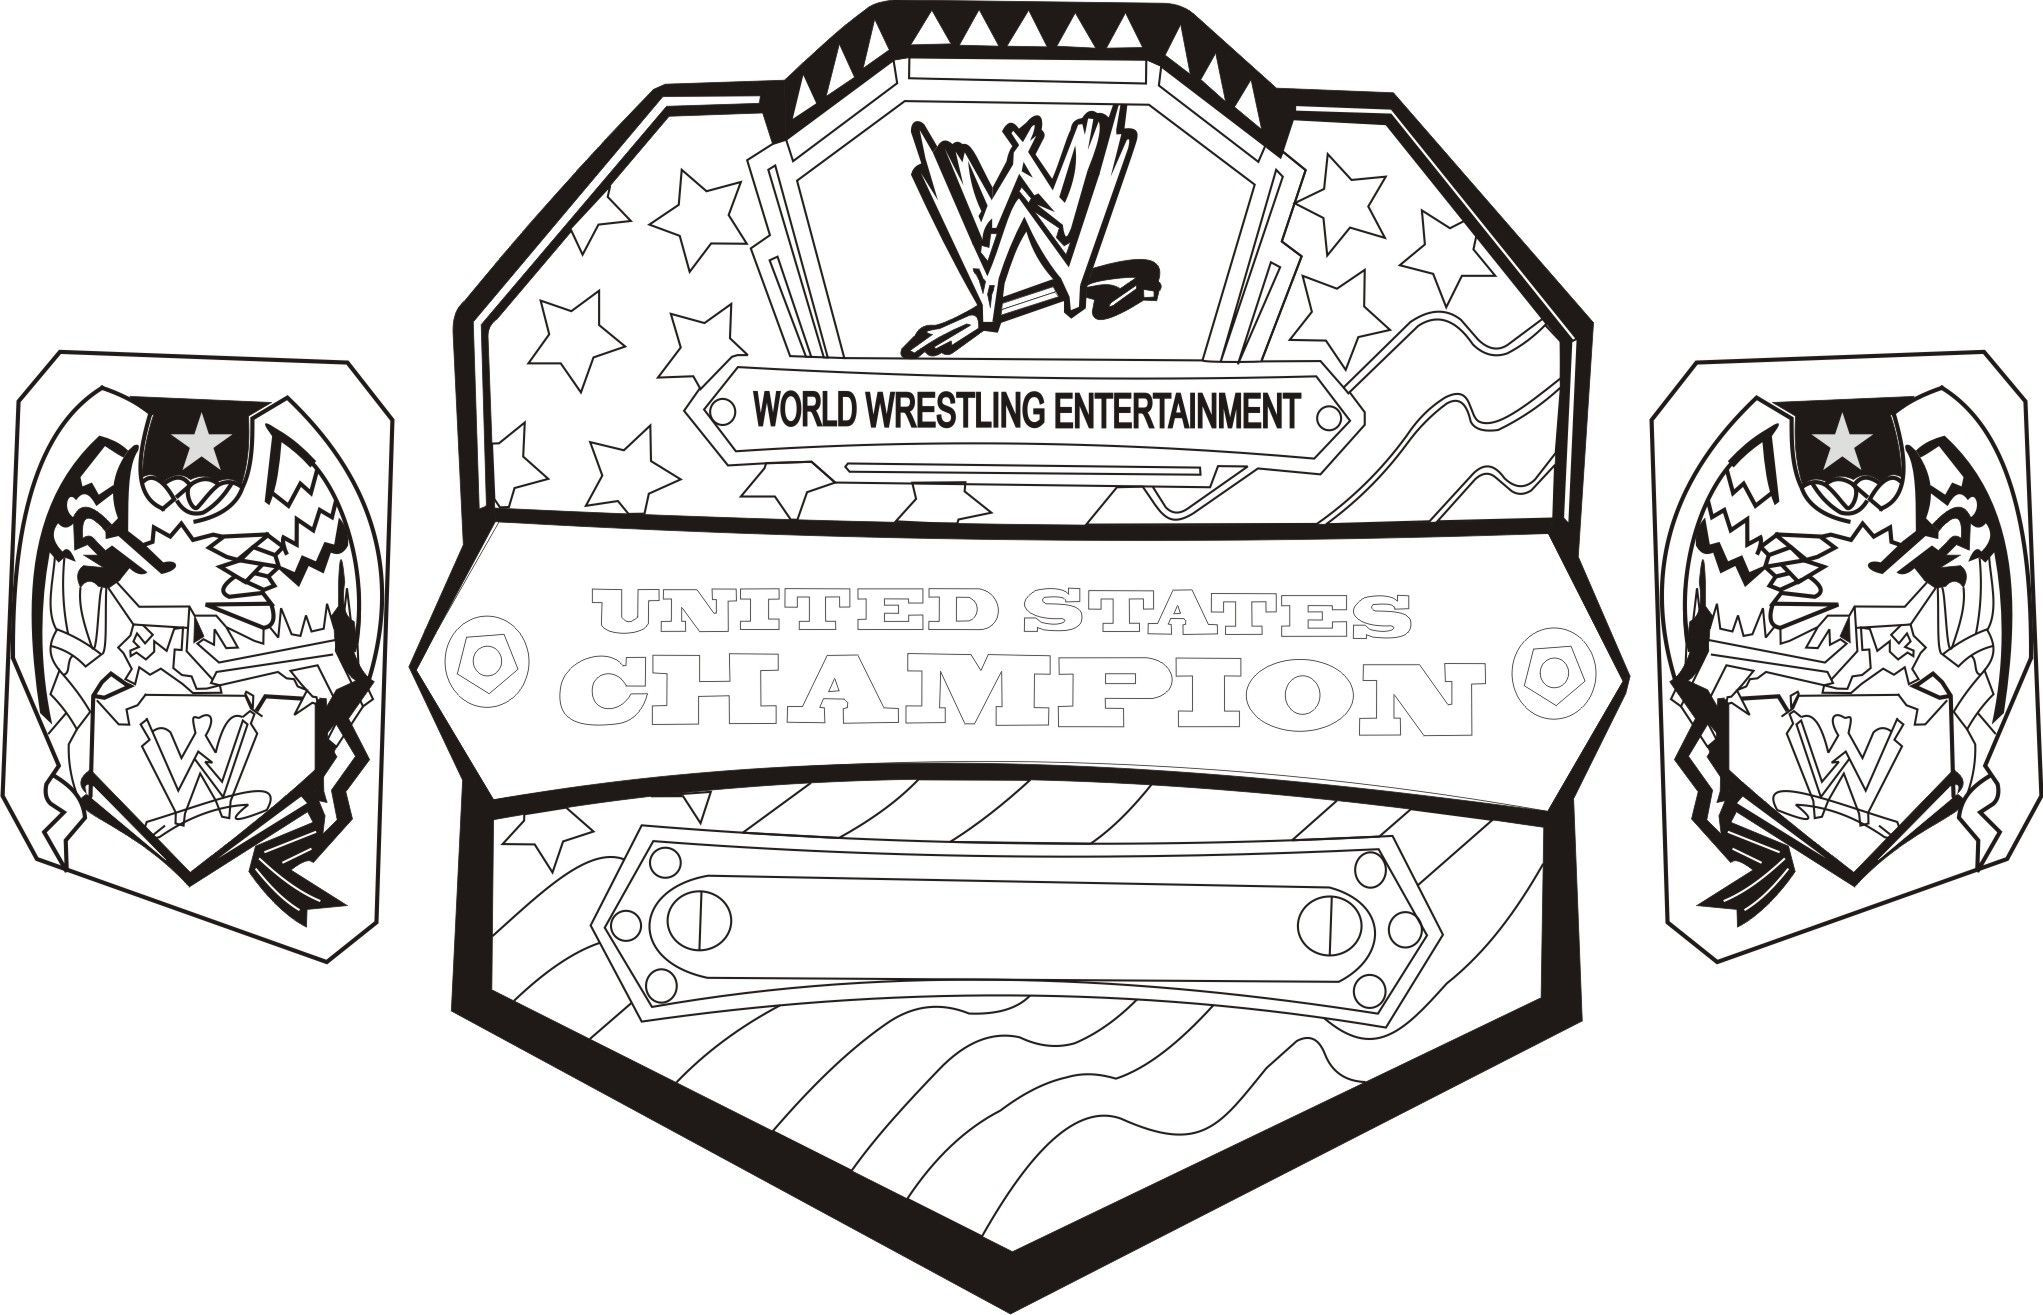 Awesome Wwe Coloring Pages Free 62 For Child With Wwe Coloring Pages Free Wwe Coloring Pages Wwe Belts Wwe Birthday Party